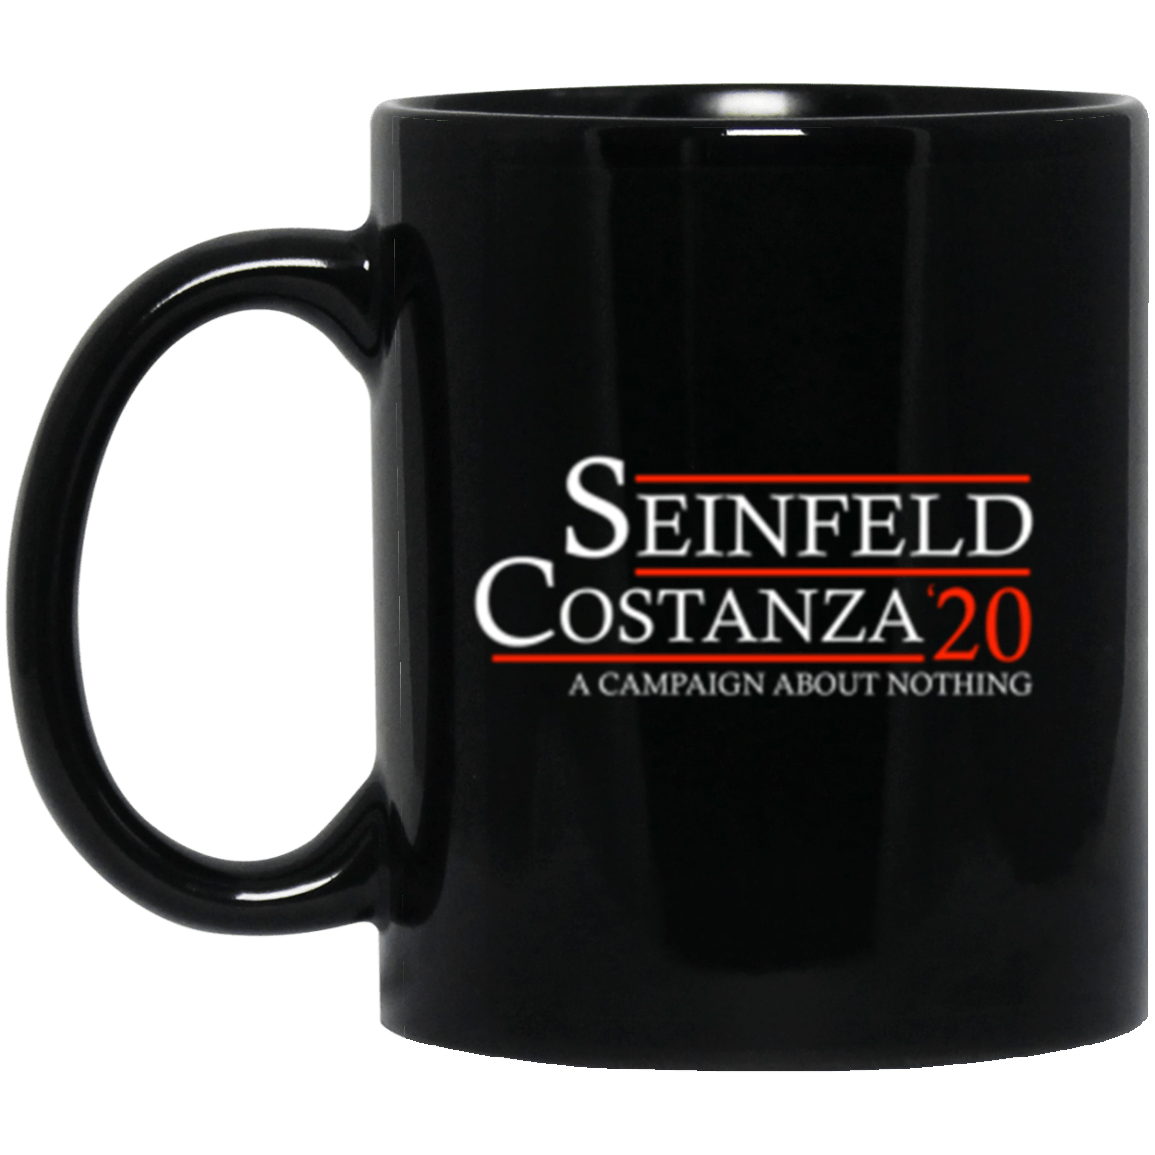 Seinfeld 20 Black Mug 11oz (2-sided)